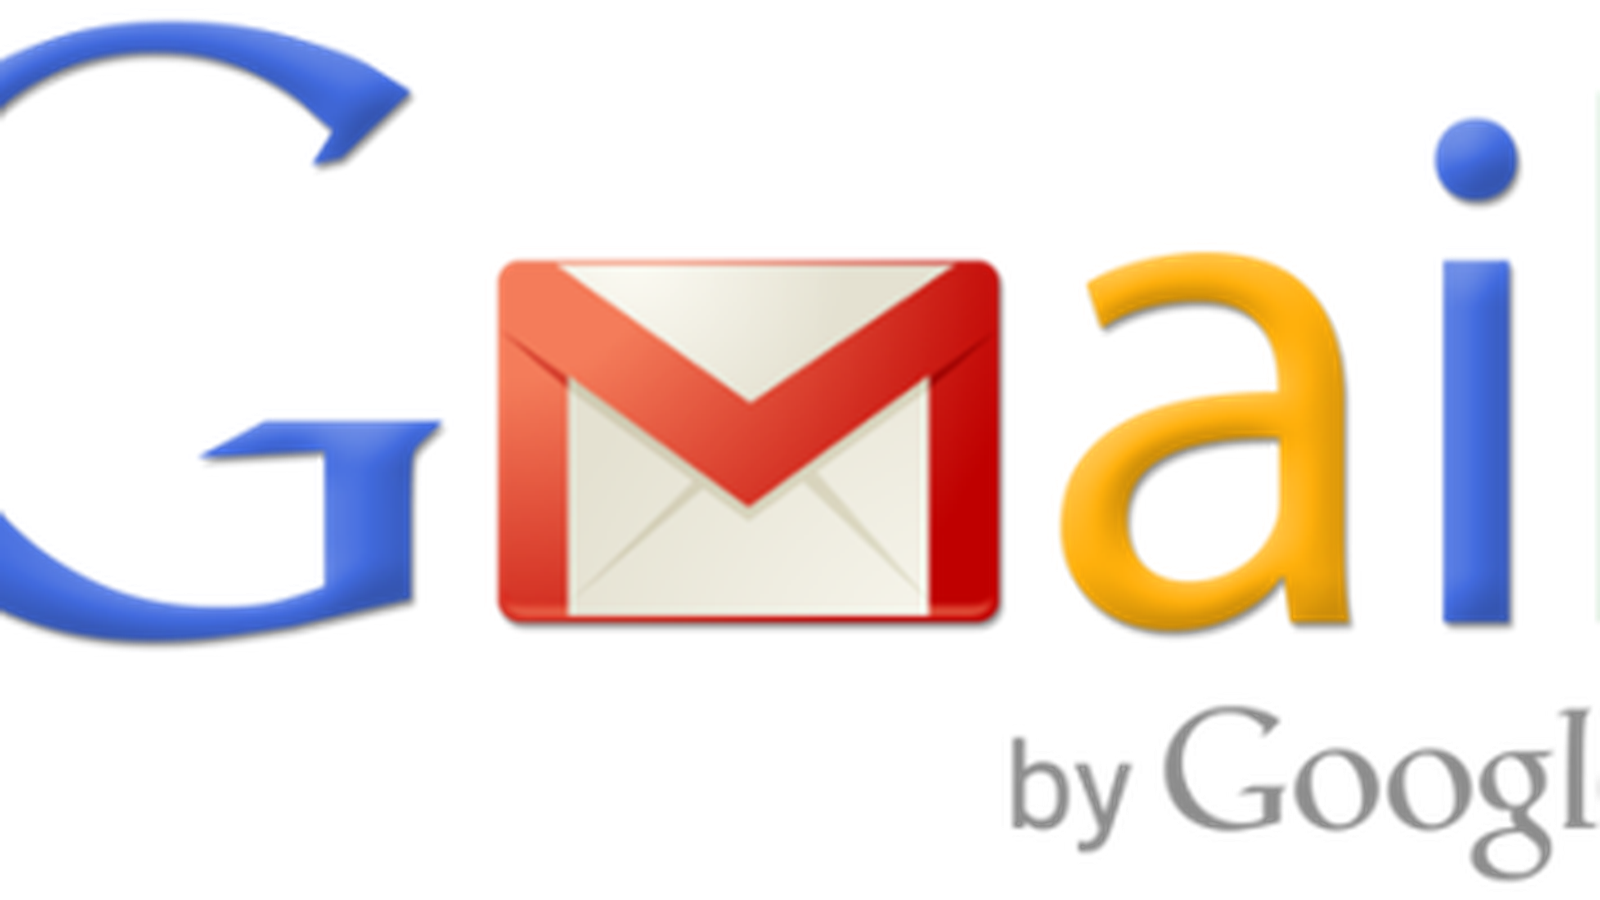 the gmail logo was designed the night before the service